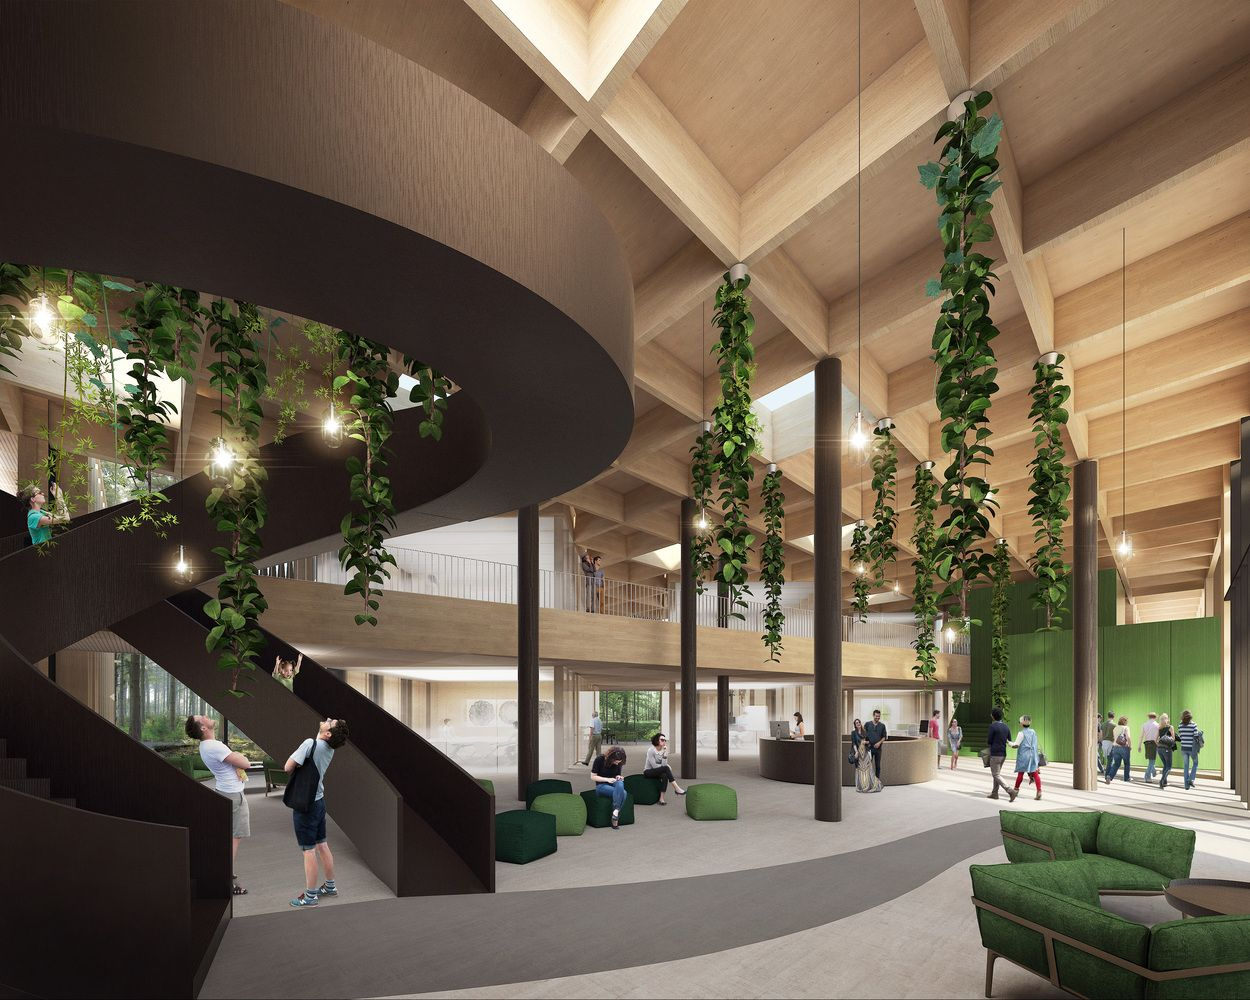 Gallery of Landscape and Building Merge in New Czech Forestry ...